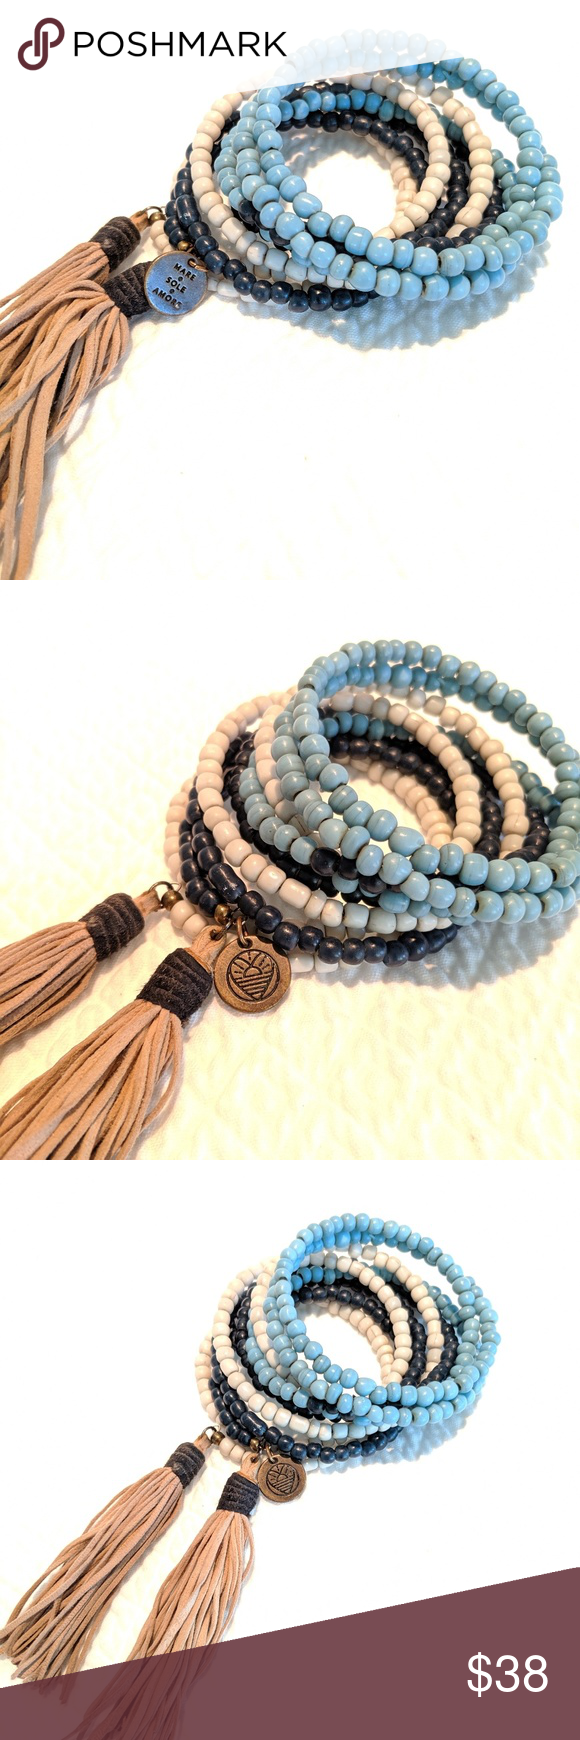 Wrap tassel bracelet from Mare.Sol.Amore Wrap bracelet with suede tassels. Beaded on wire to wrap your wrist. Navy, turquoise and gray with taupe tassels. Perfect with Muche et Muchette caftan dress. Mare. Sol. Amore. Jewelry Bracelets